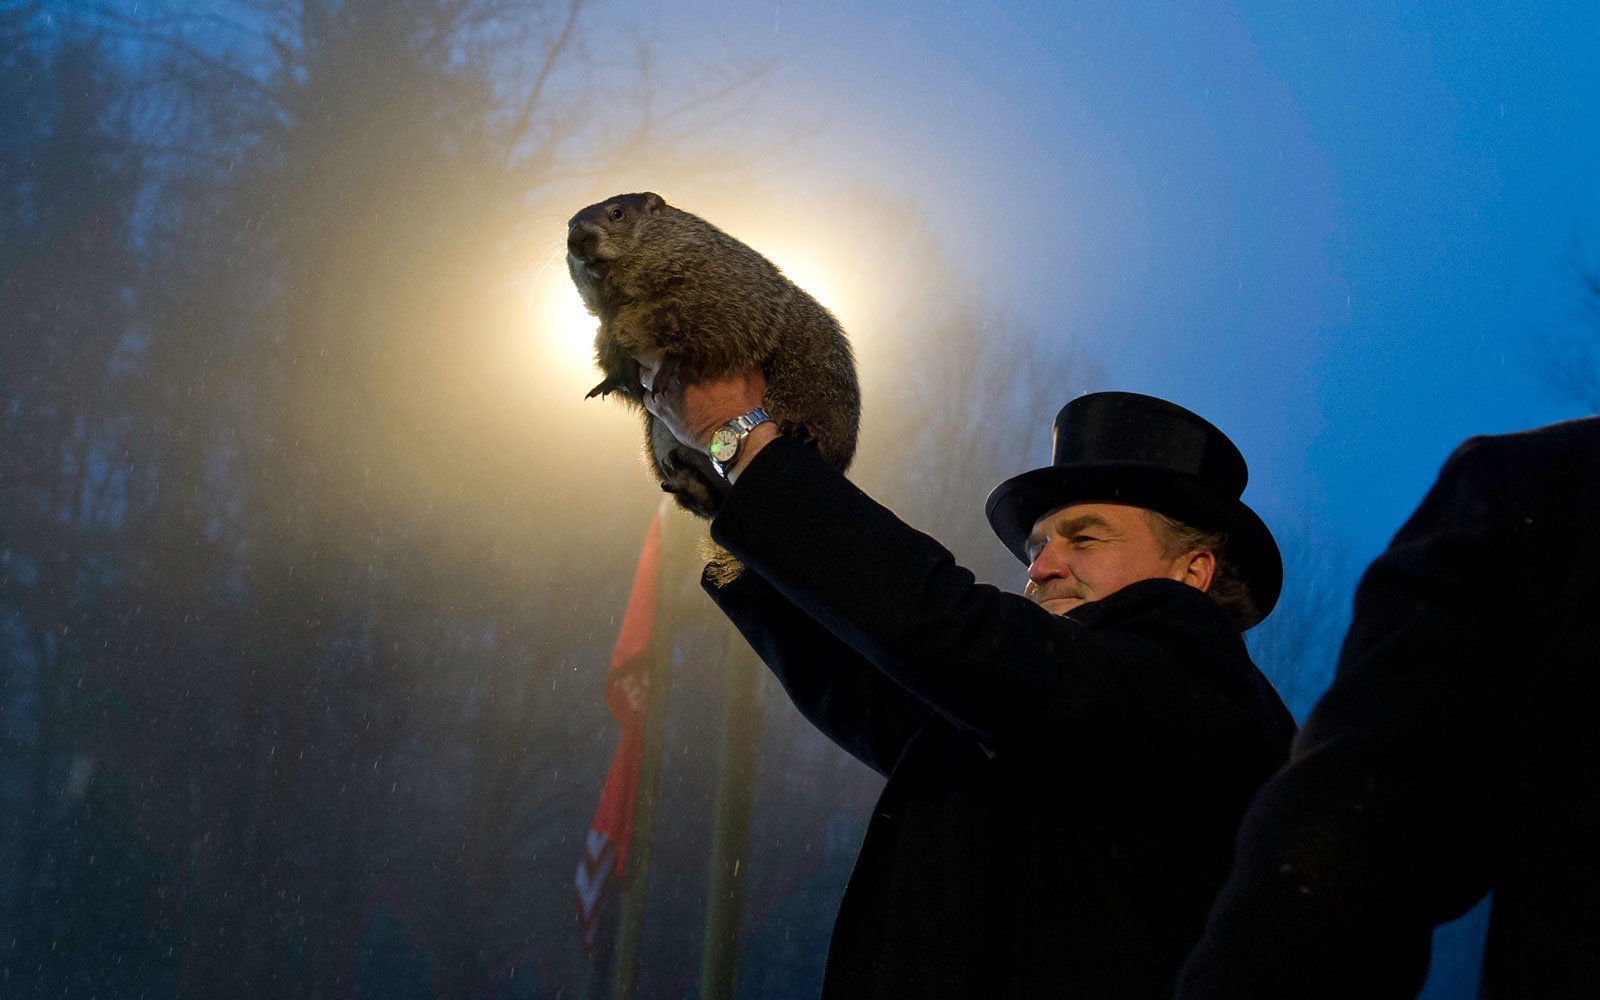 https://cdn-image.travelandleisure.com/sites/default/files/styles/1600x1000/public/1517419499/groundhog-day-GROUNDHOG118.jpg